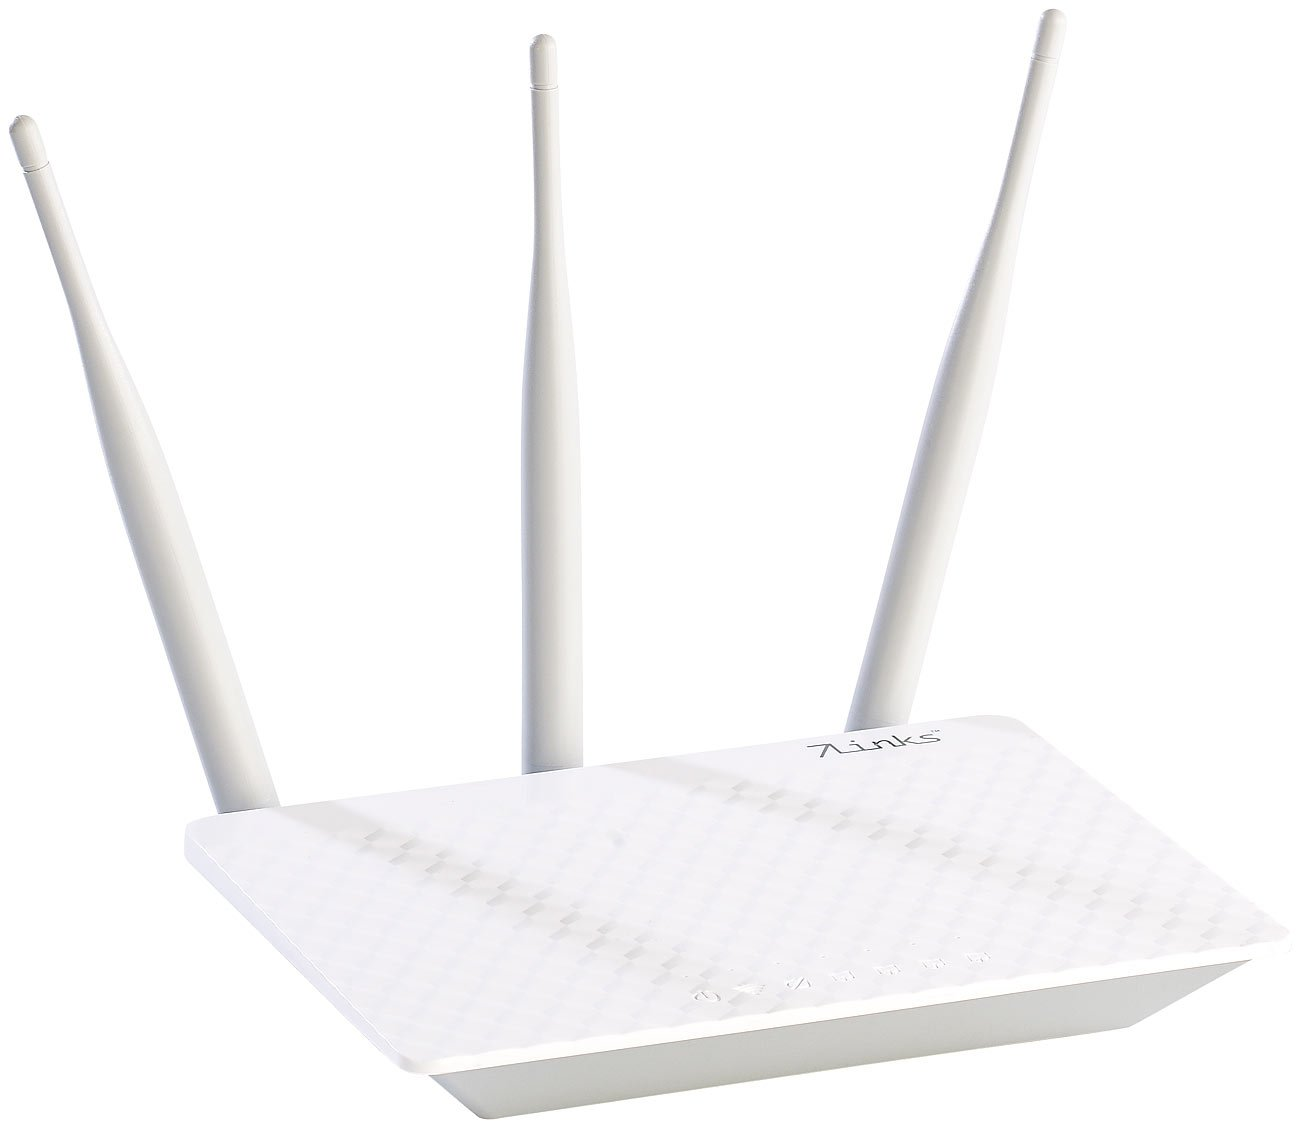 7links WLAN Modem: 300-Mbit-High-Power-WLAN-Router mit: Amazon.de ...